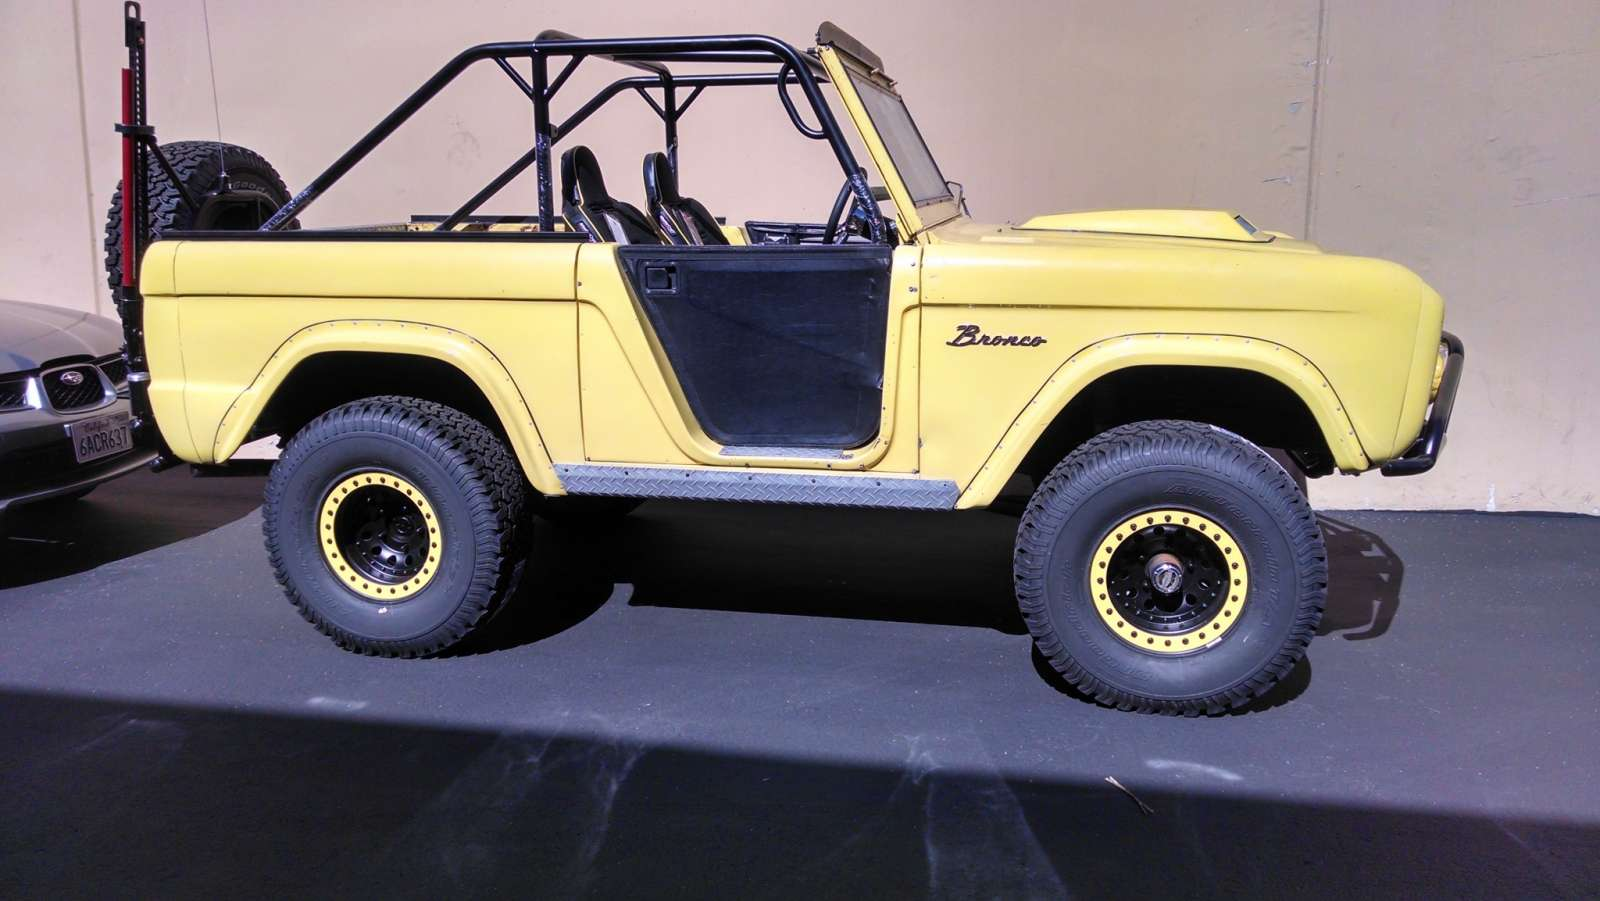 Ford Bronco Cage